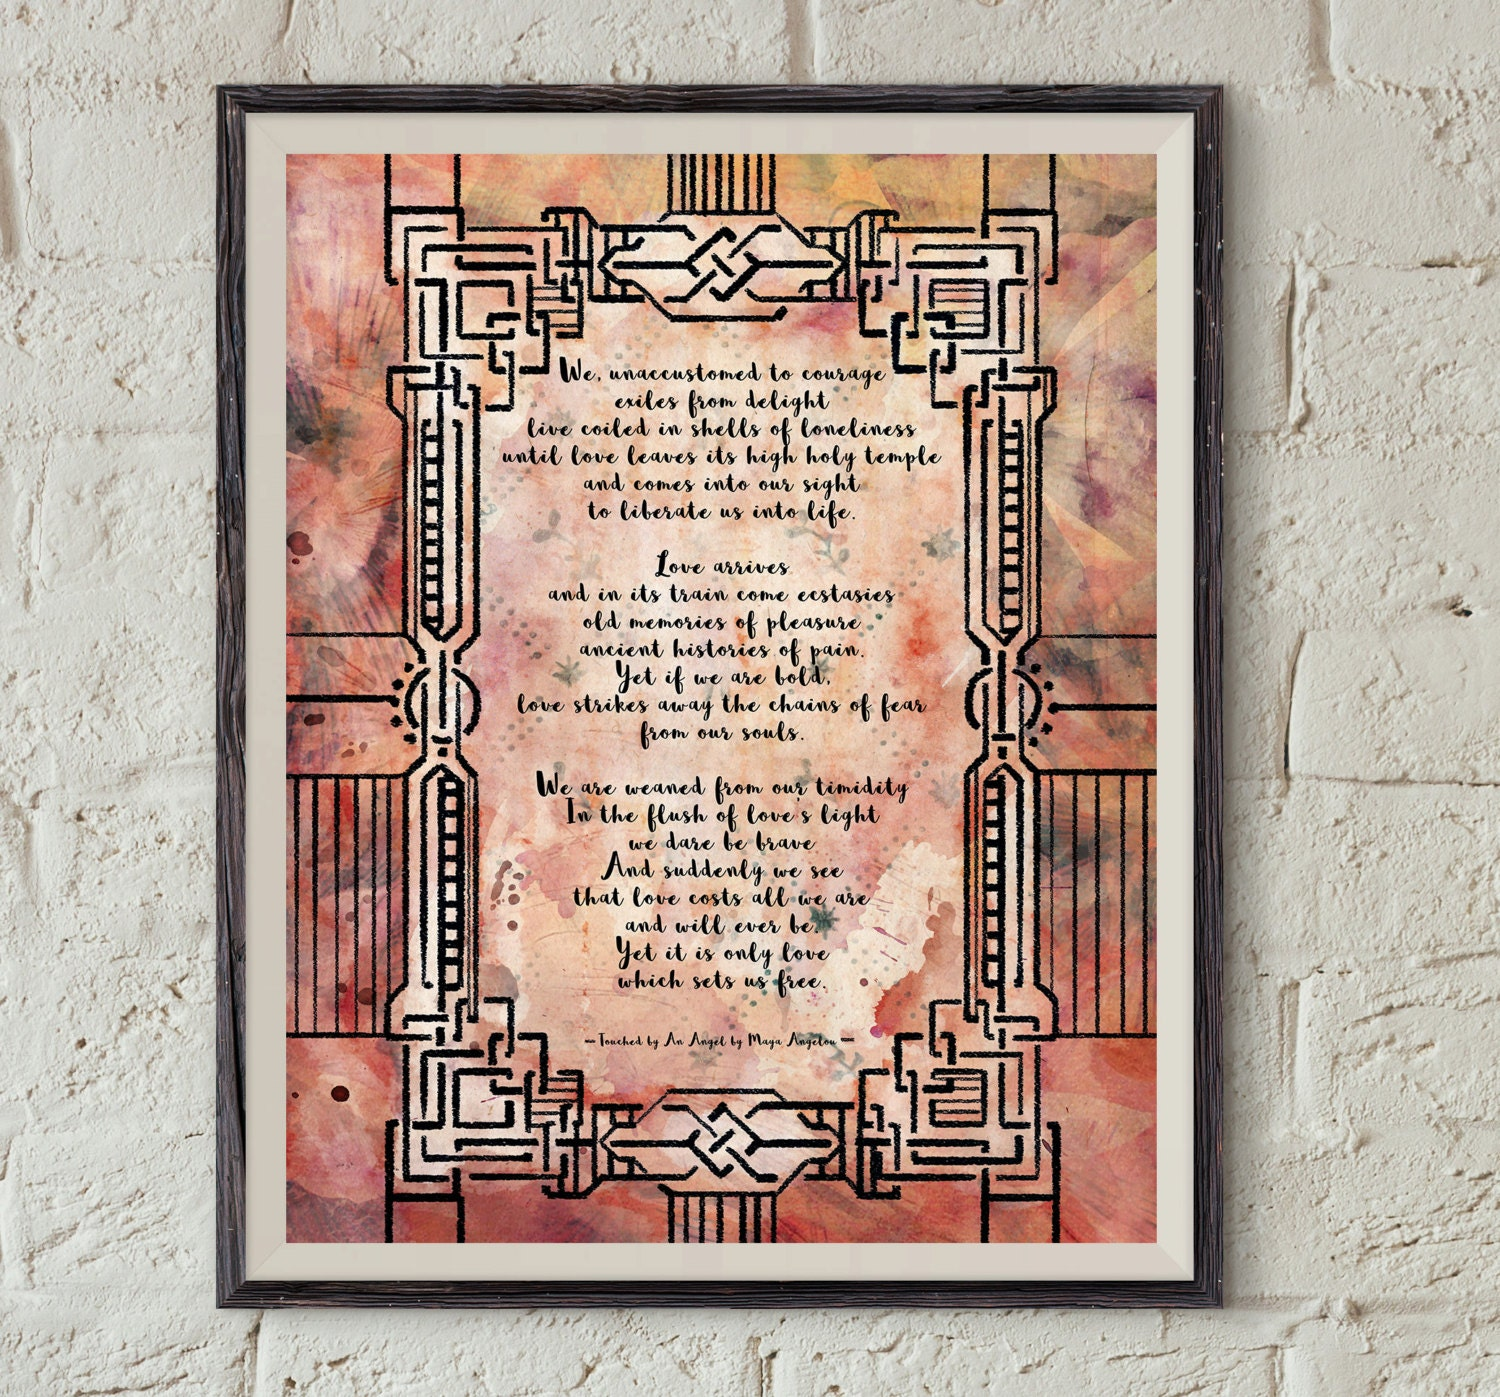 Maya Angelou Poem - Touched By An Angel - Love Poetry Art - Digital  Download Print - Literature Printable - Poetry Home Decor - Love Quote